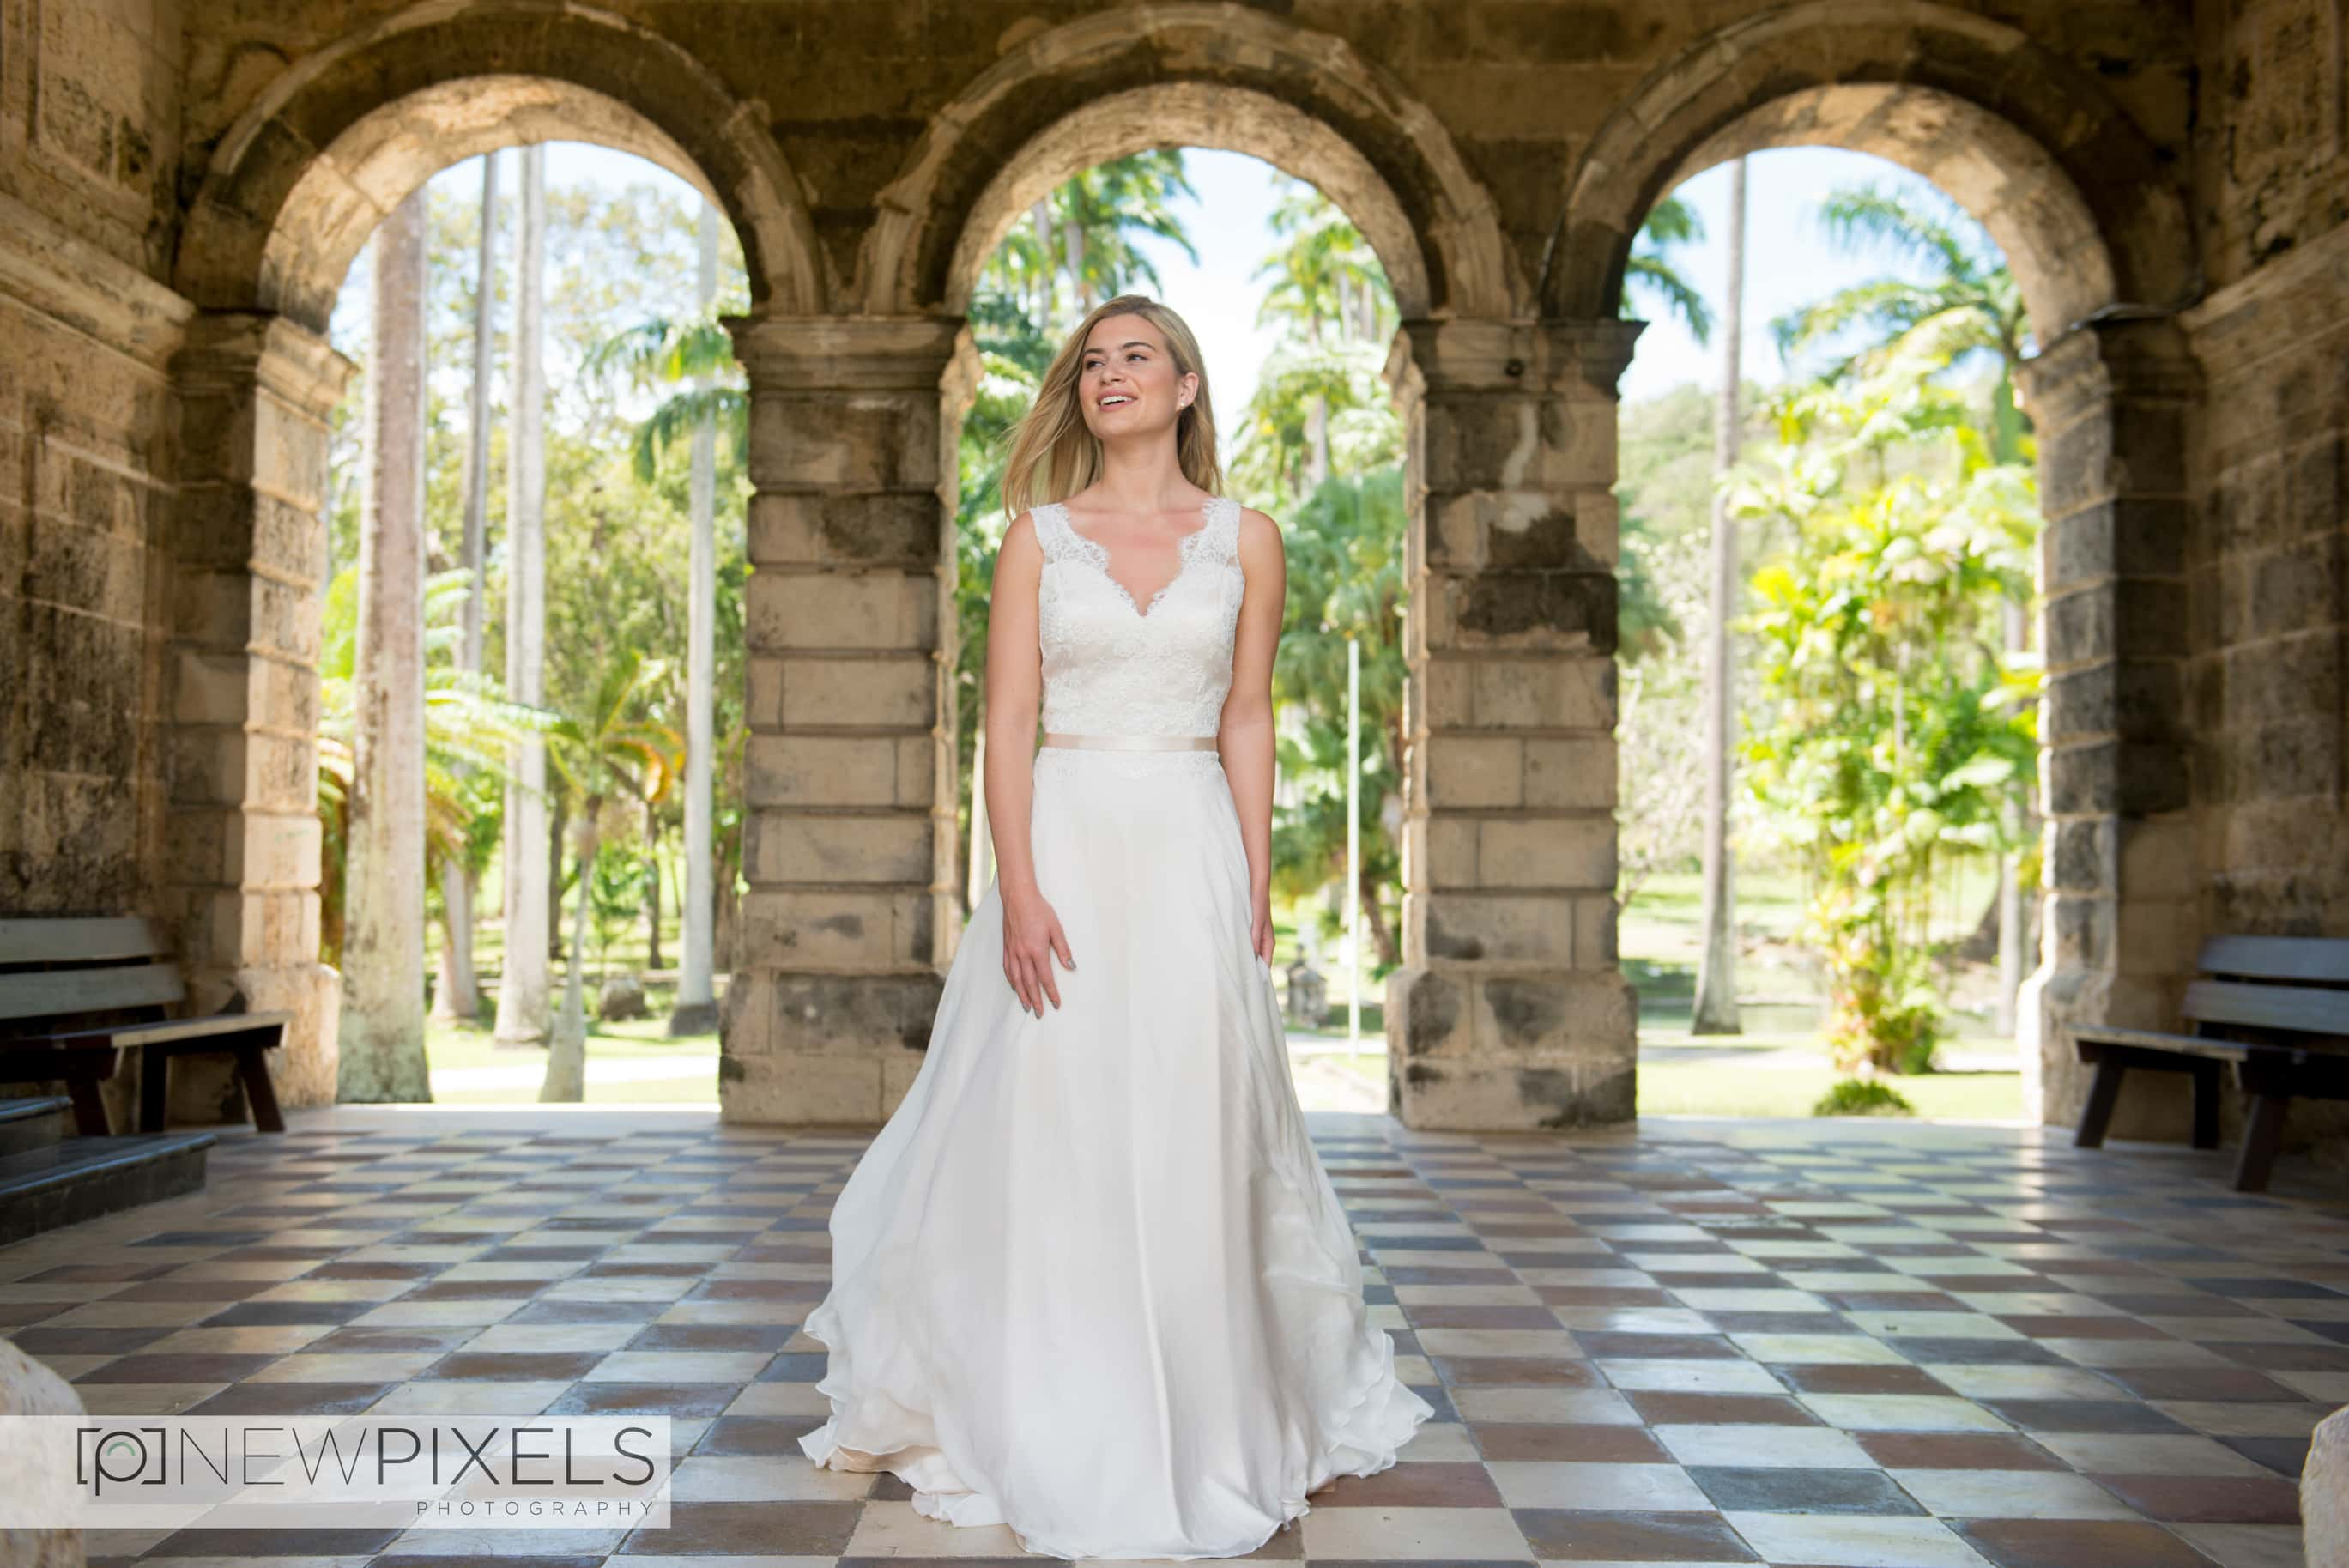 Destination Wedding Photographer- New Pixels-22